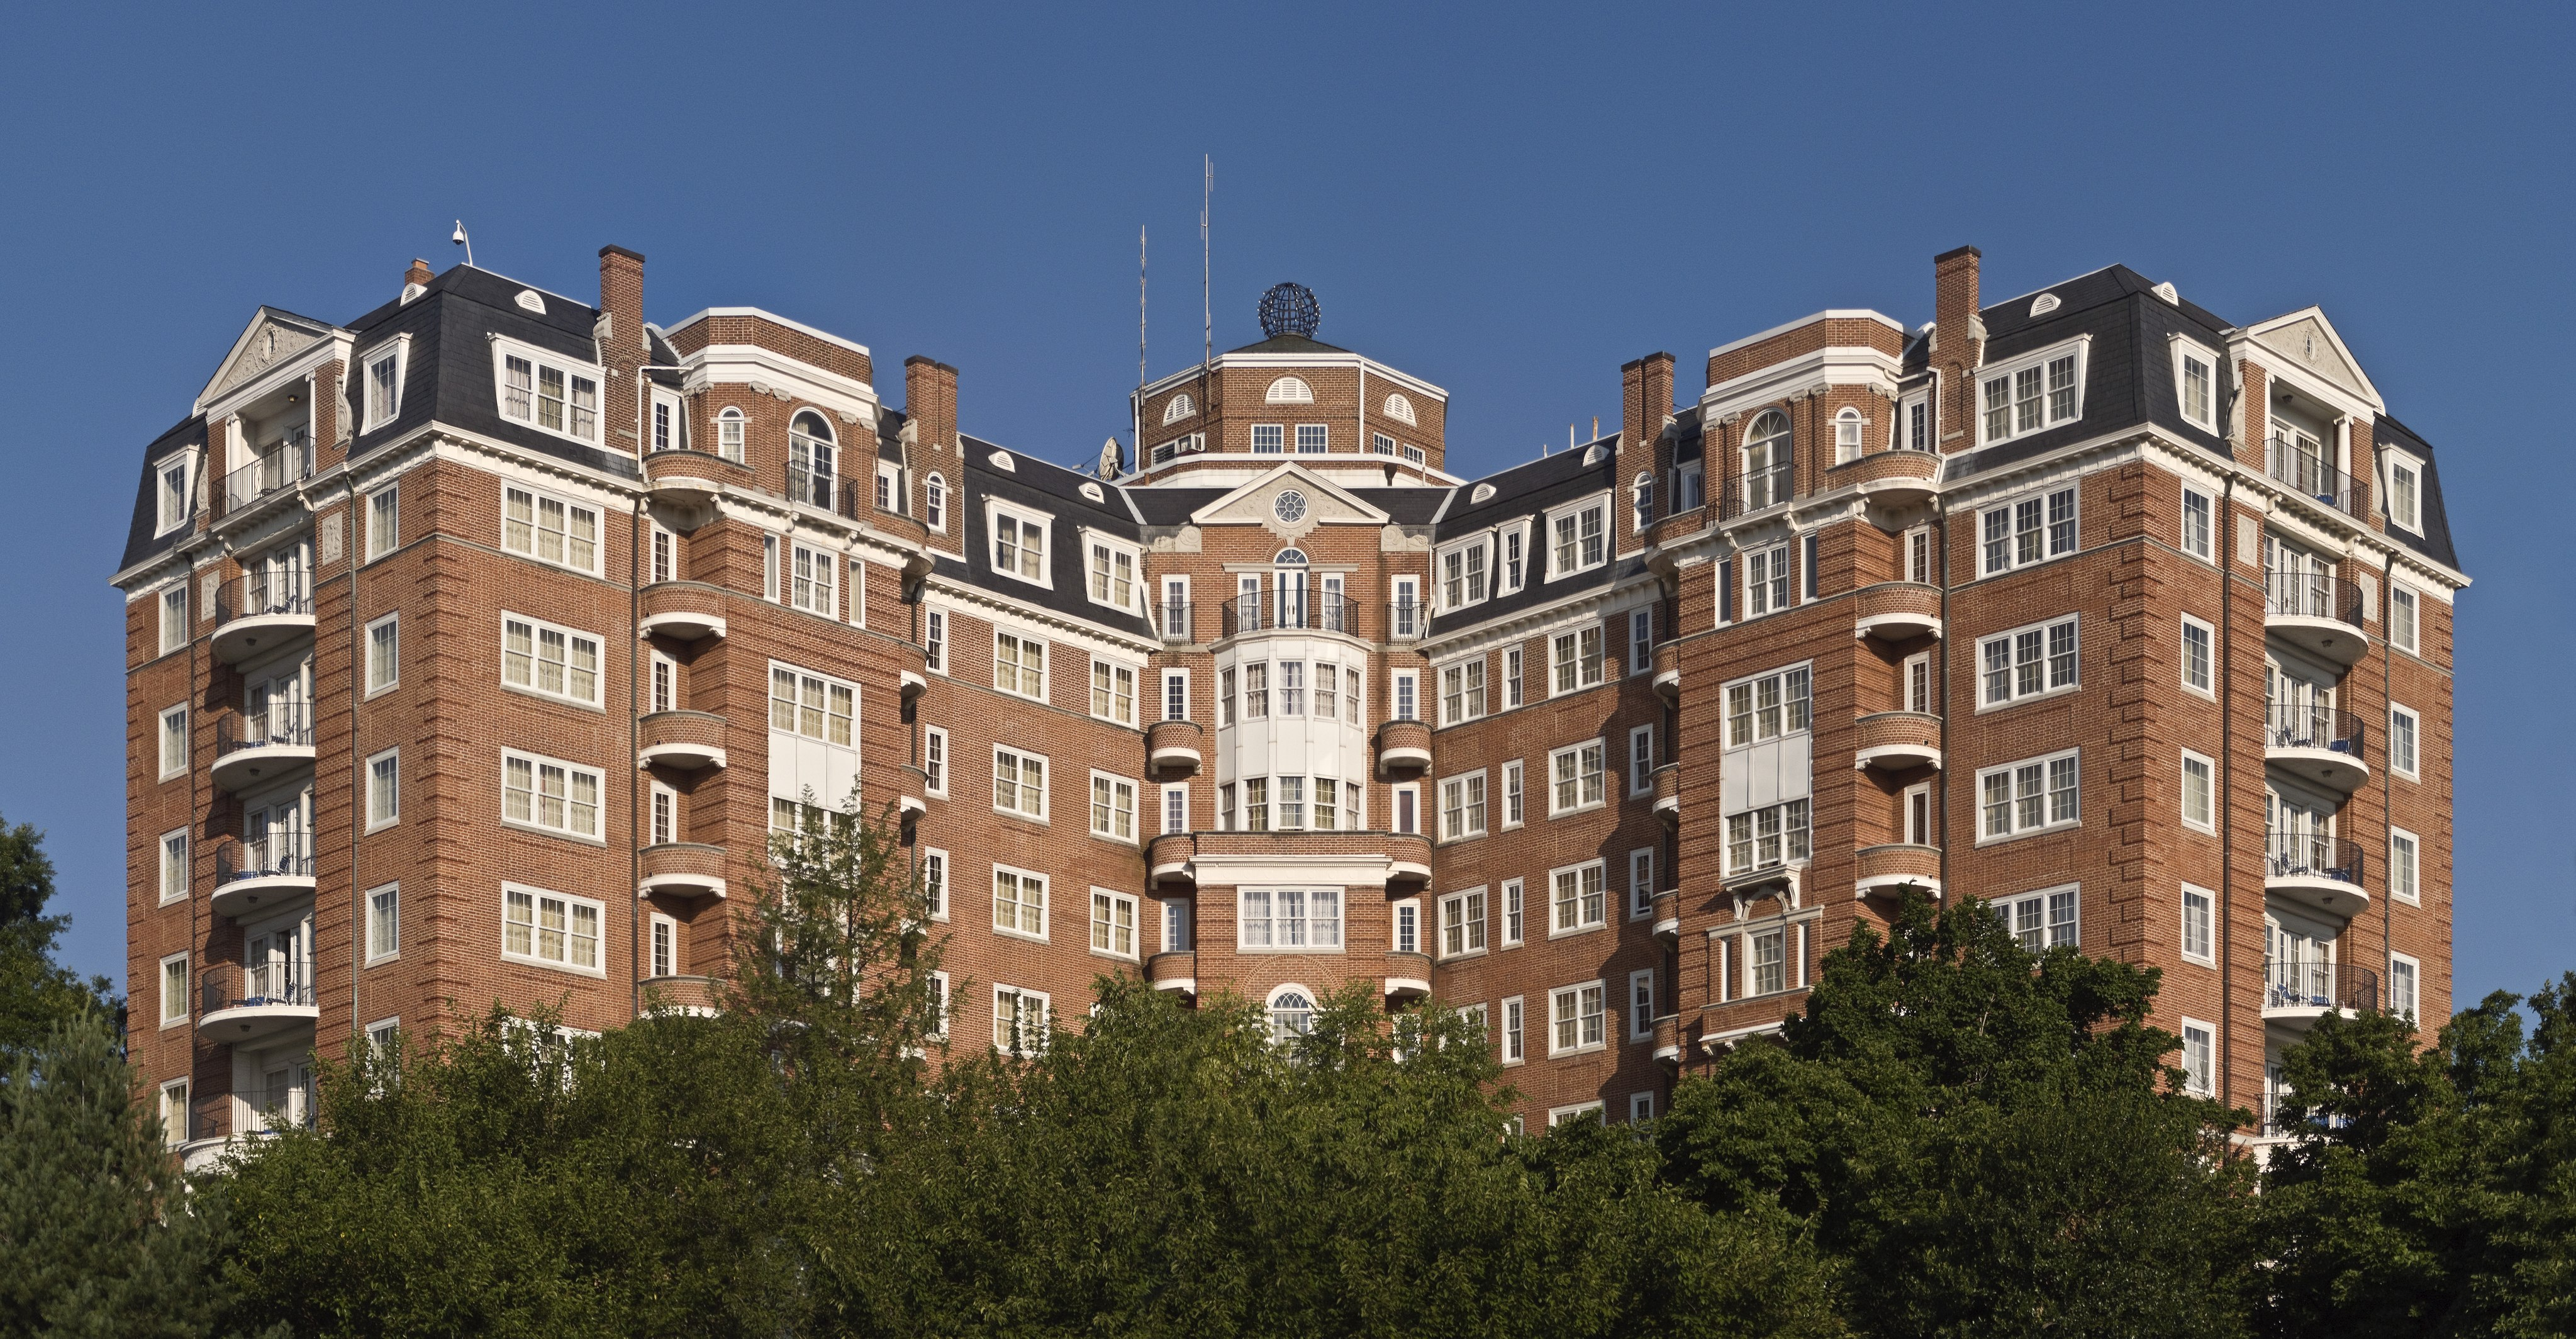 Wardman Tower viewed from the east by Jürgen Matern on Wikimedia Commons (CC BY-SA 3.0)